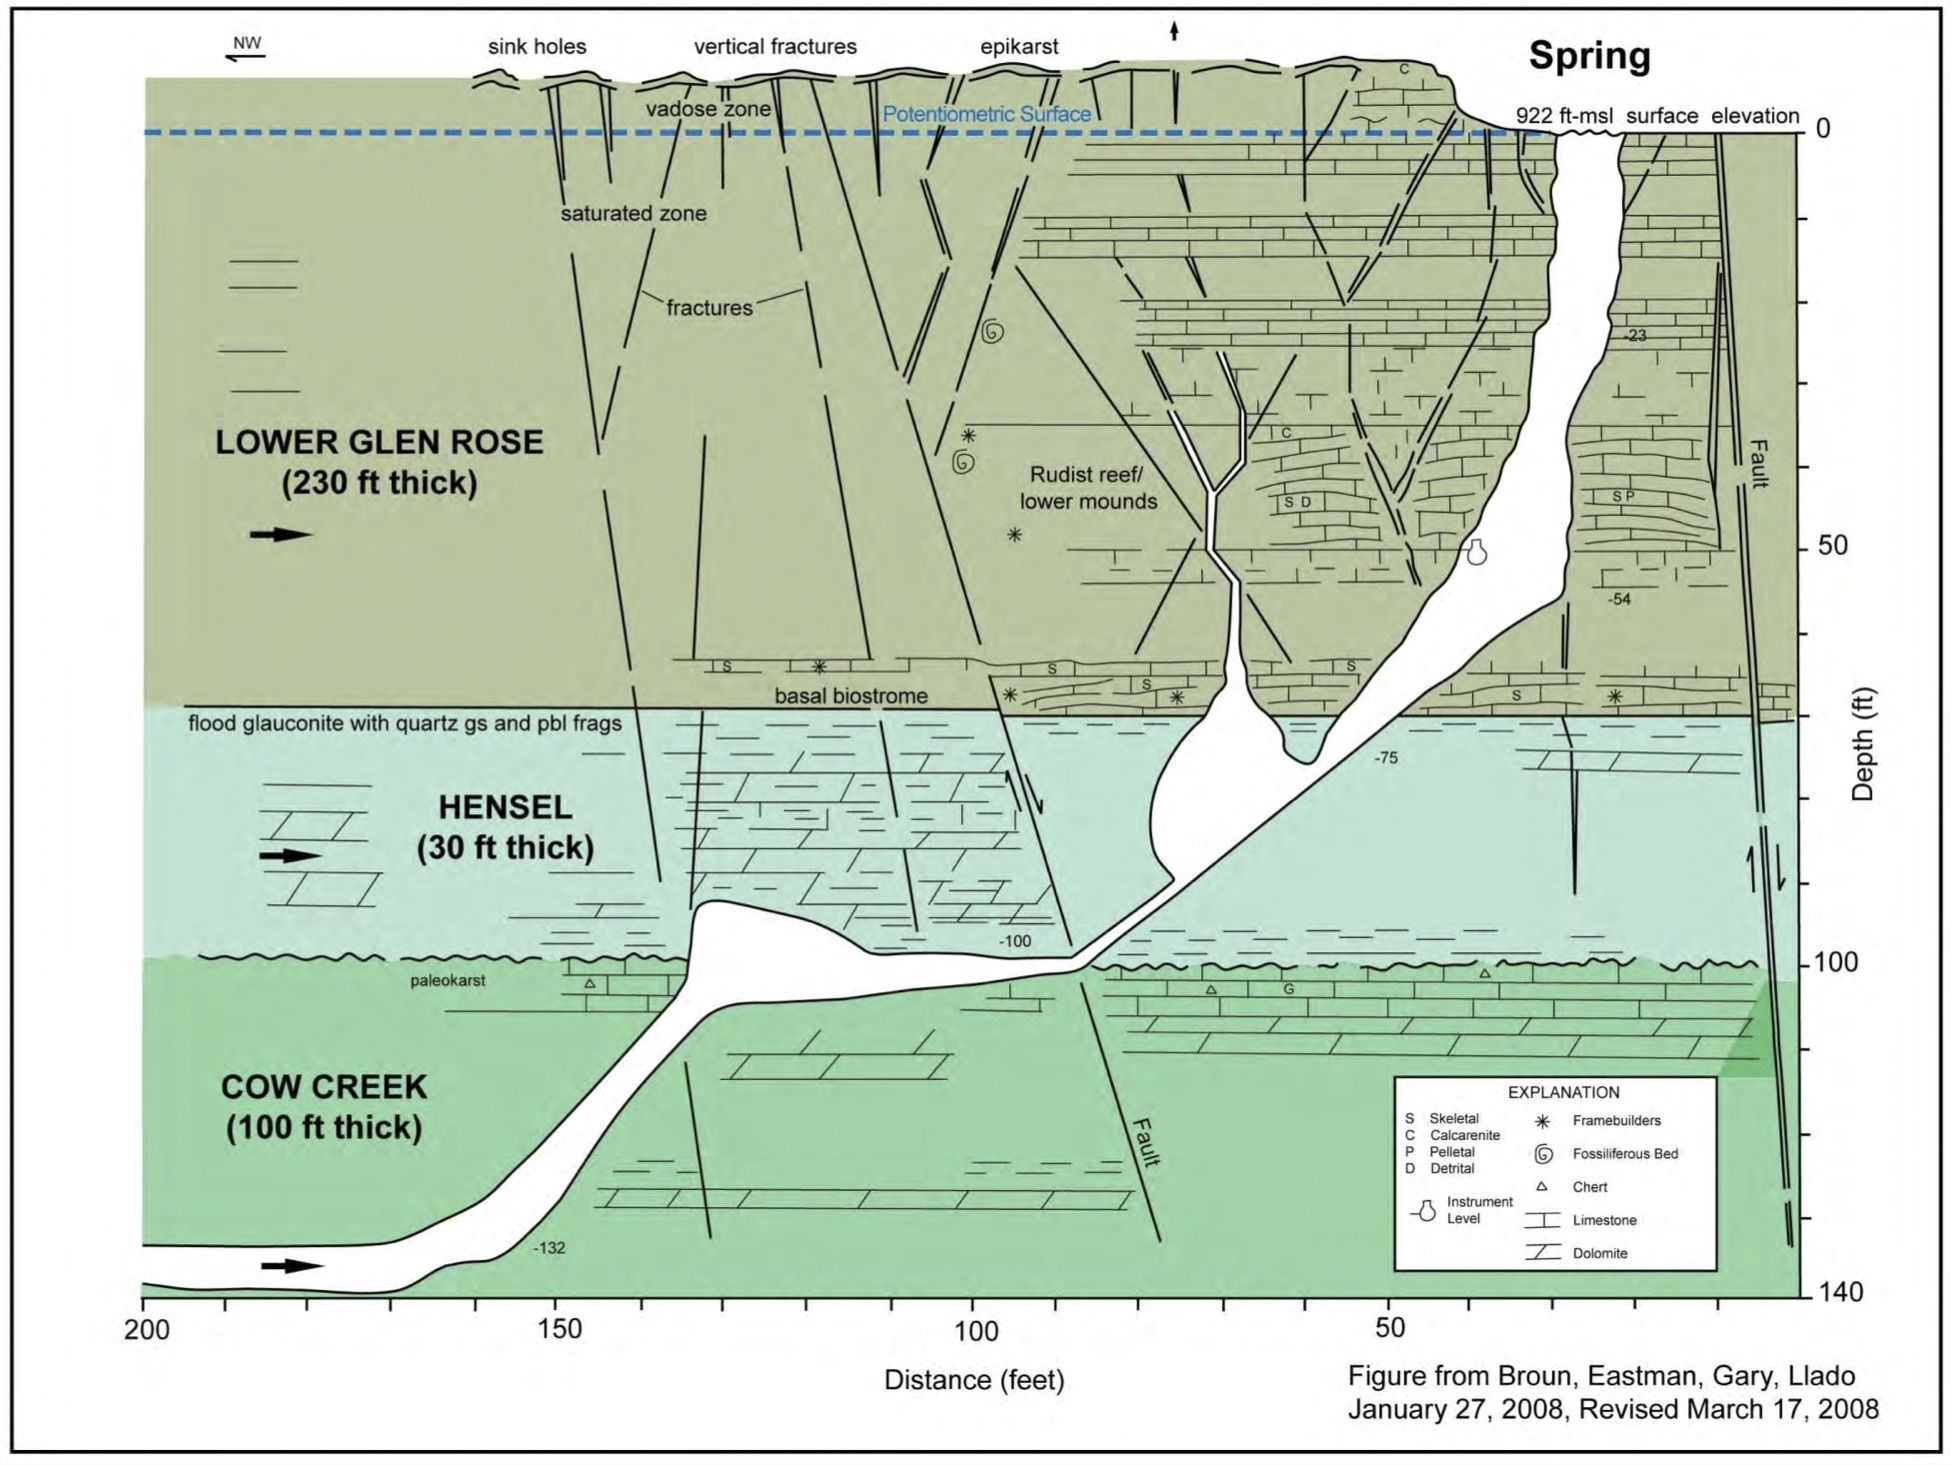 Figure 3 - Cross-section of Jacobs Well Spring: Subsurface cave created by water dissolving limestone along fracture system.